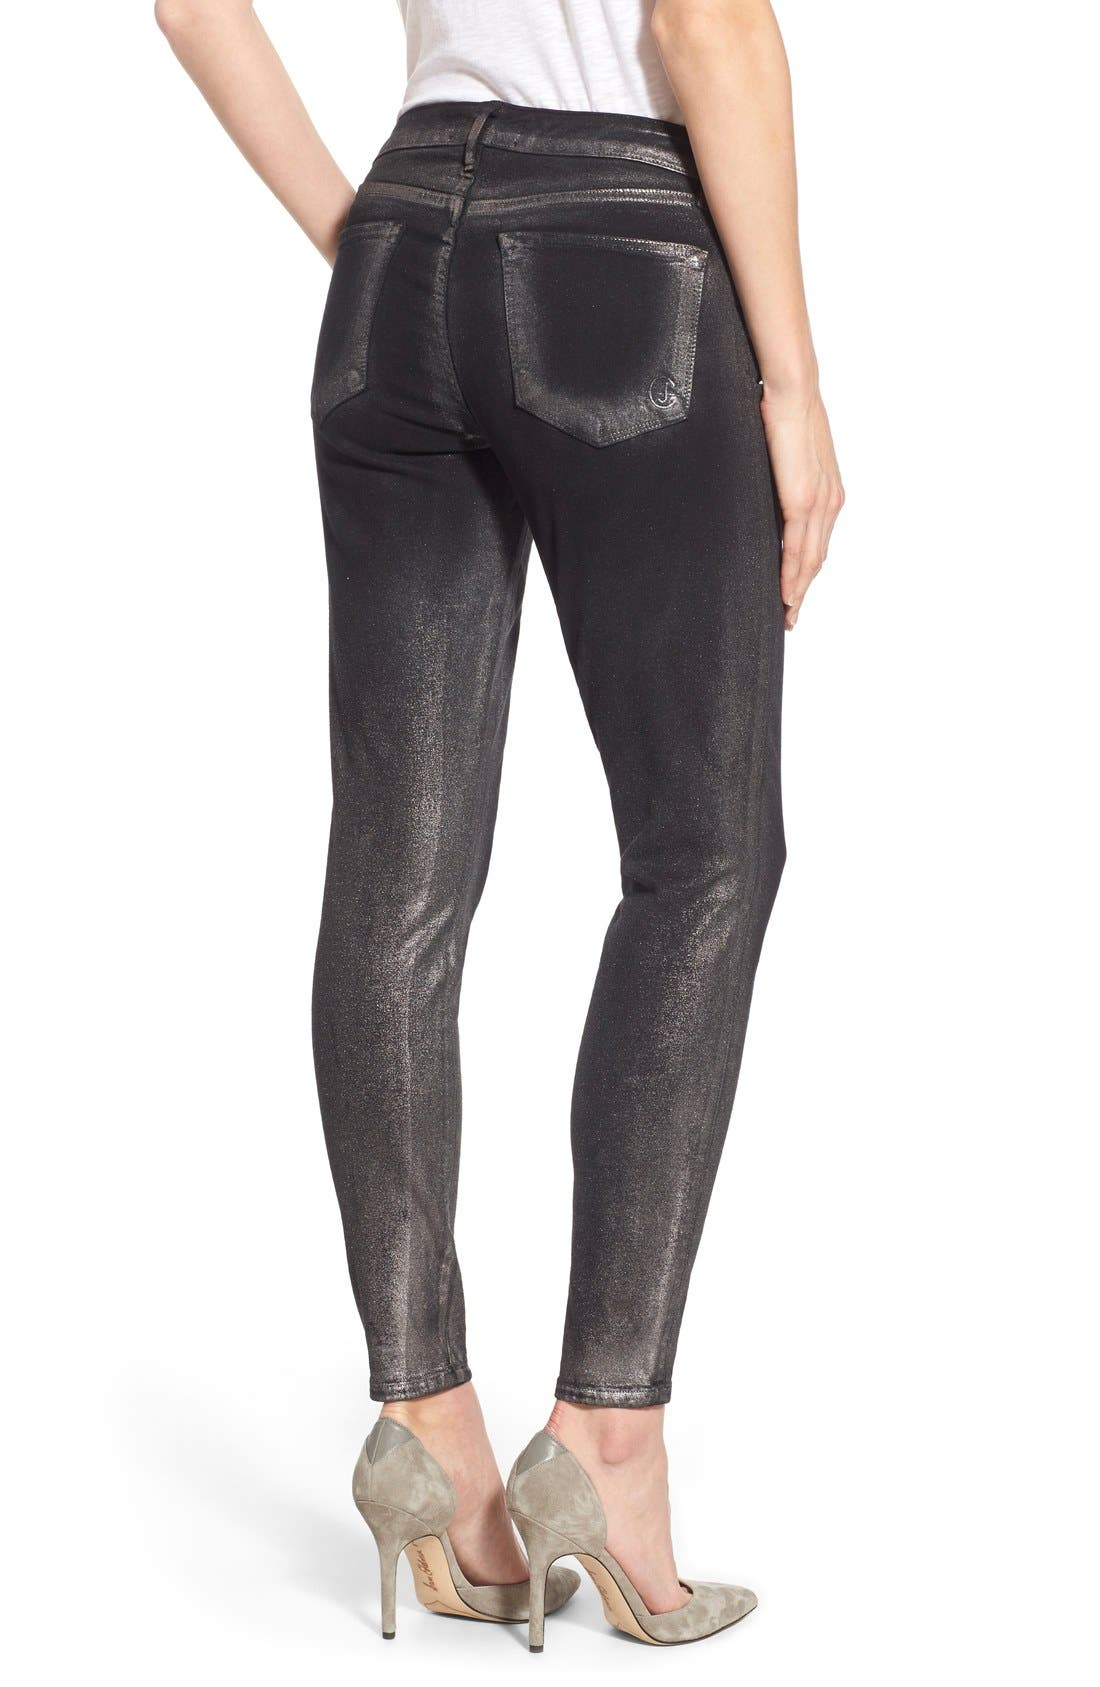 Alternate Image 2  - CJ by Cookie Johnson 'Wisdom' Brushed Foil Skinny Jeans (Pewter)